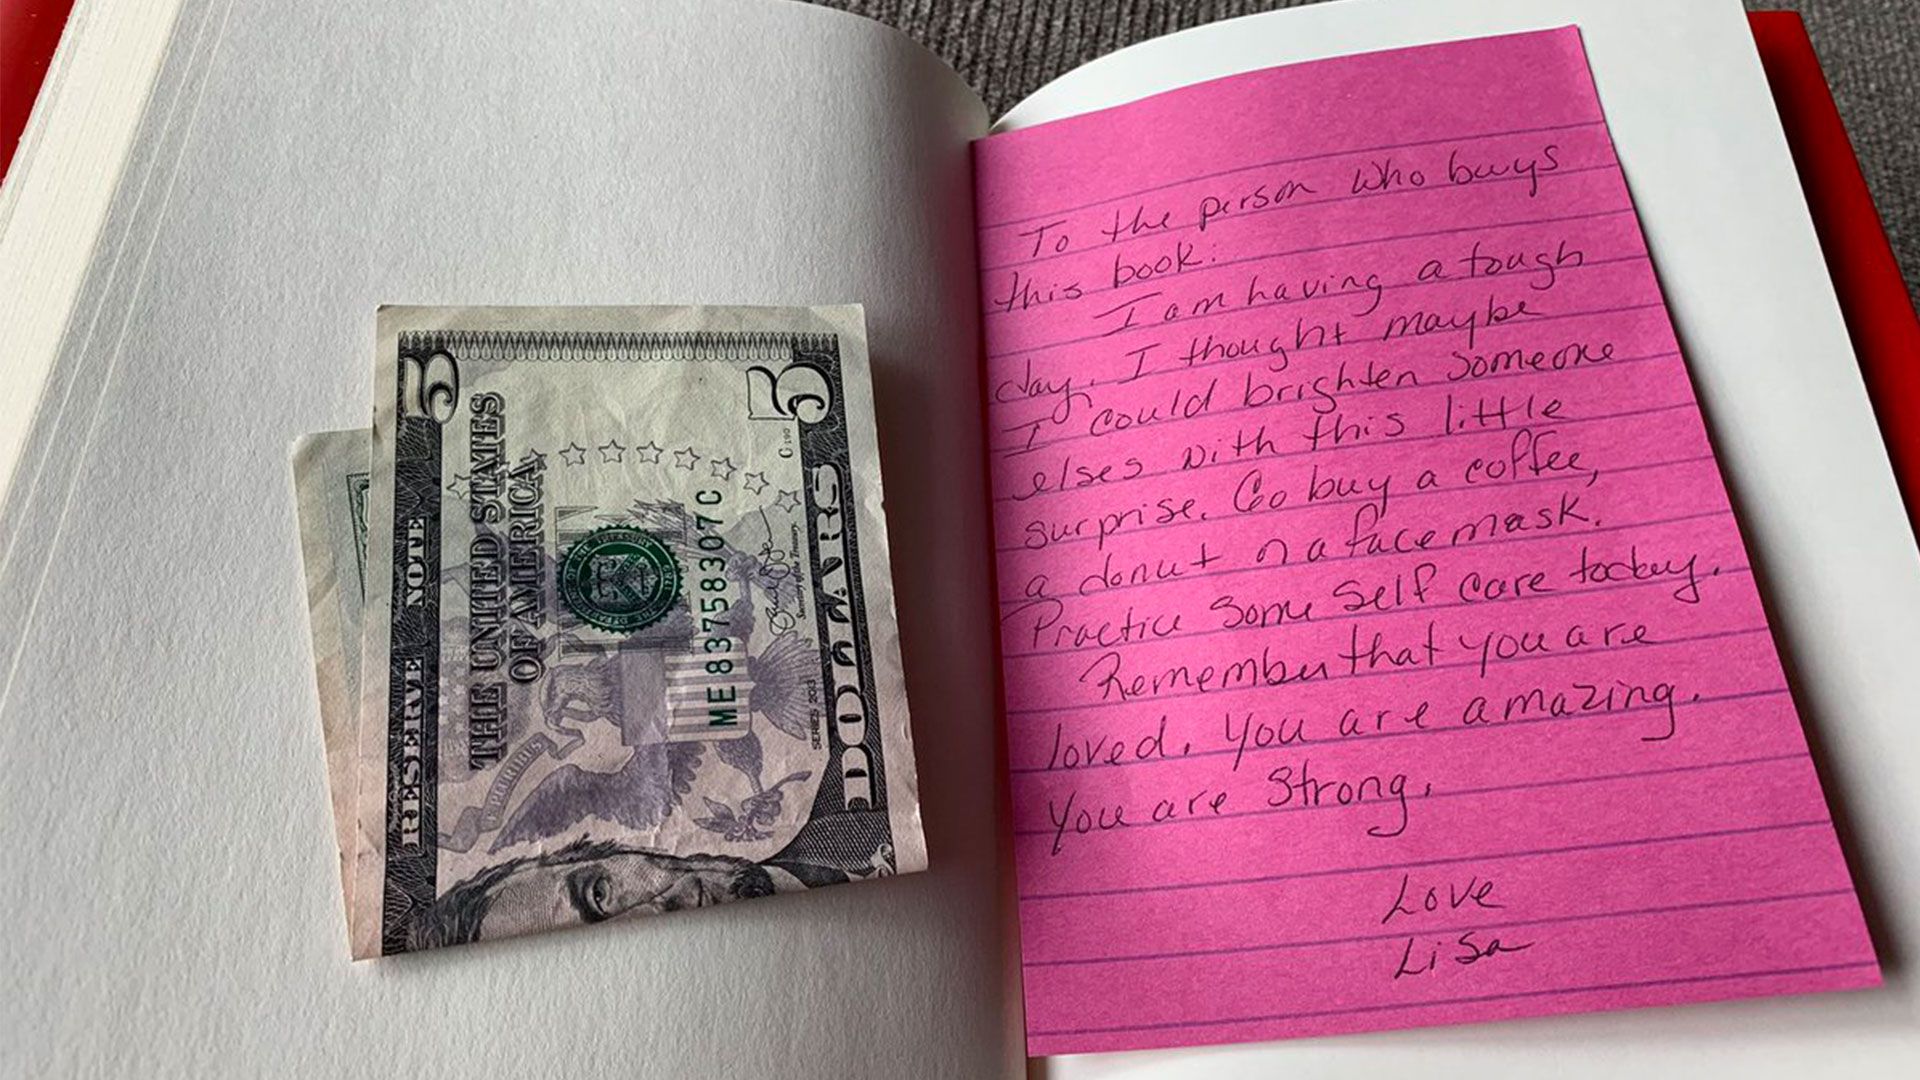 Note from Stranger in Book